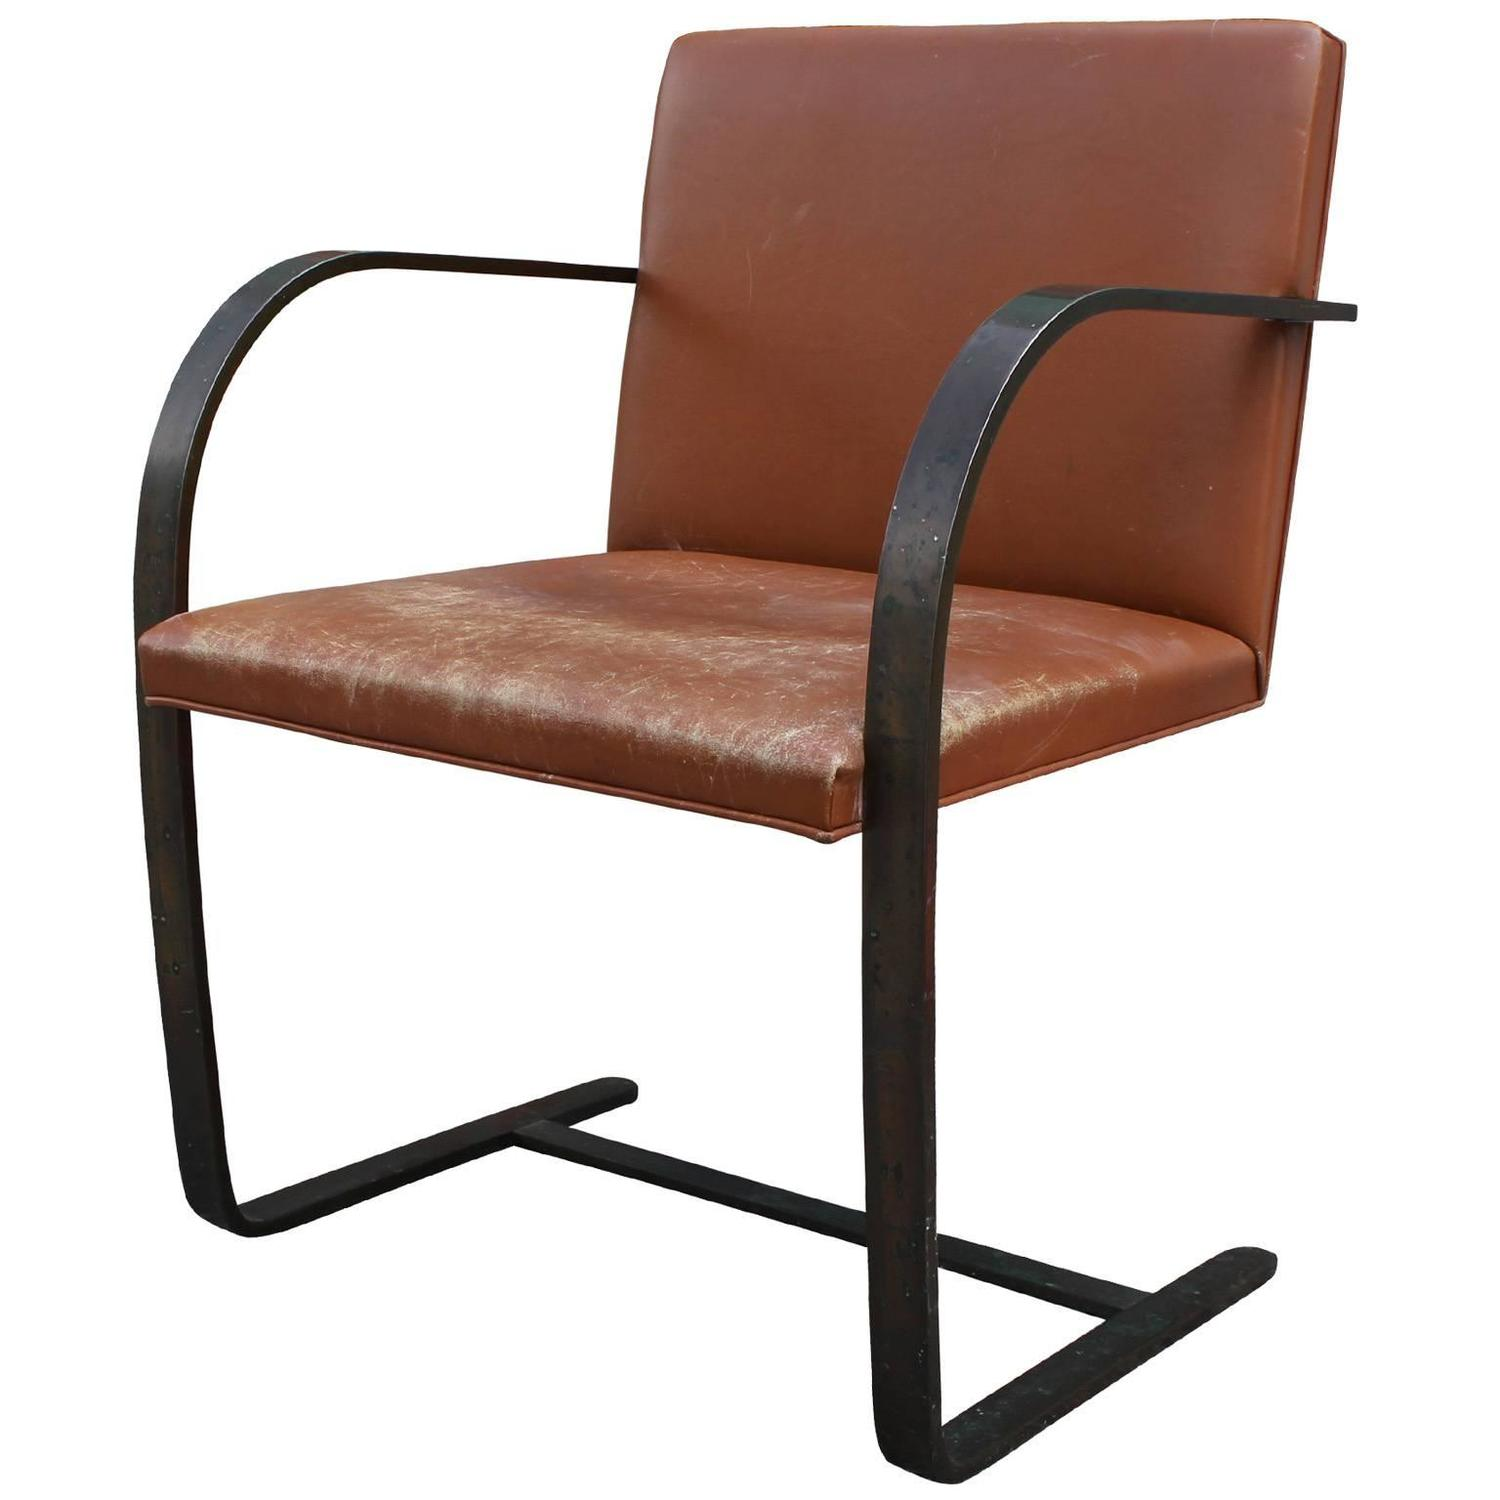 Rare Mies van der Rohe for Knoll Brno Chair in Bronze and Caramel